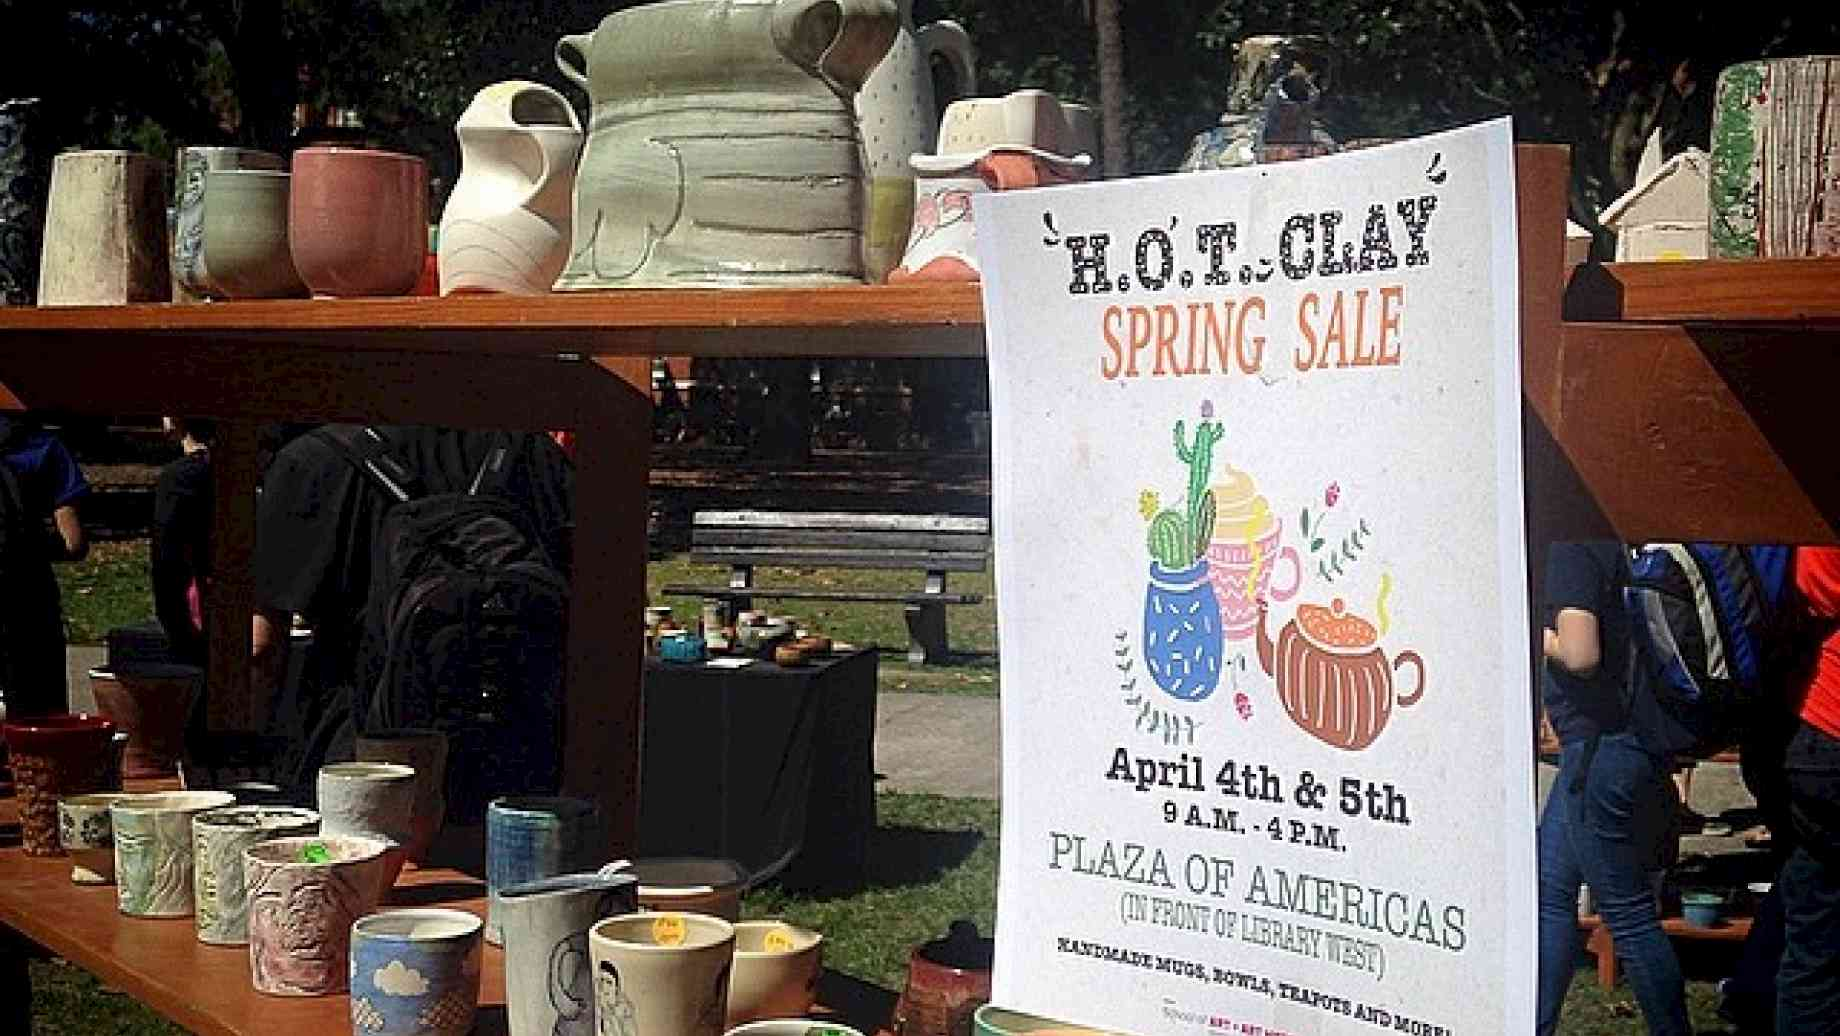 HOT Clay Spring Sale